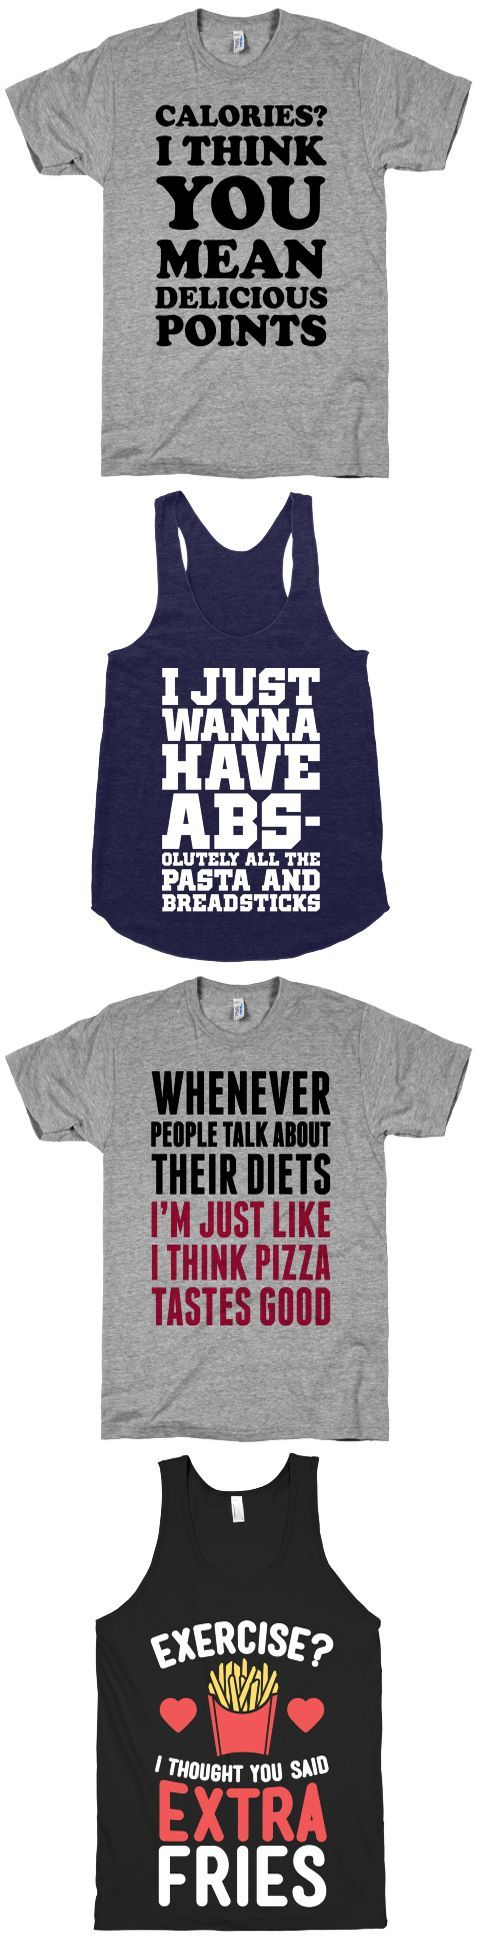 Foodie Collection - LookHUMAN   Funny Pop Culture T-Shirts, Tanks, Mugs & More  - Page